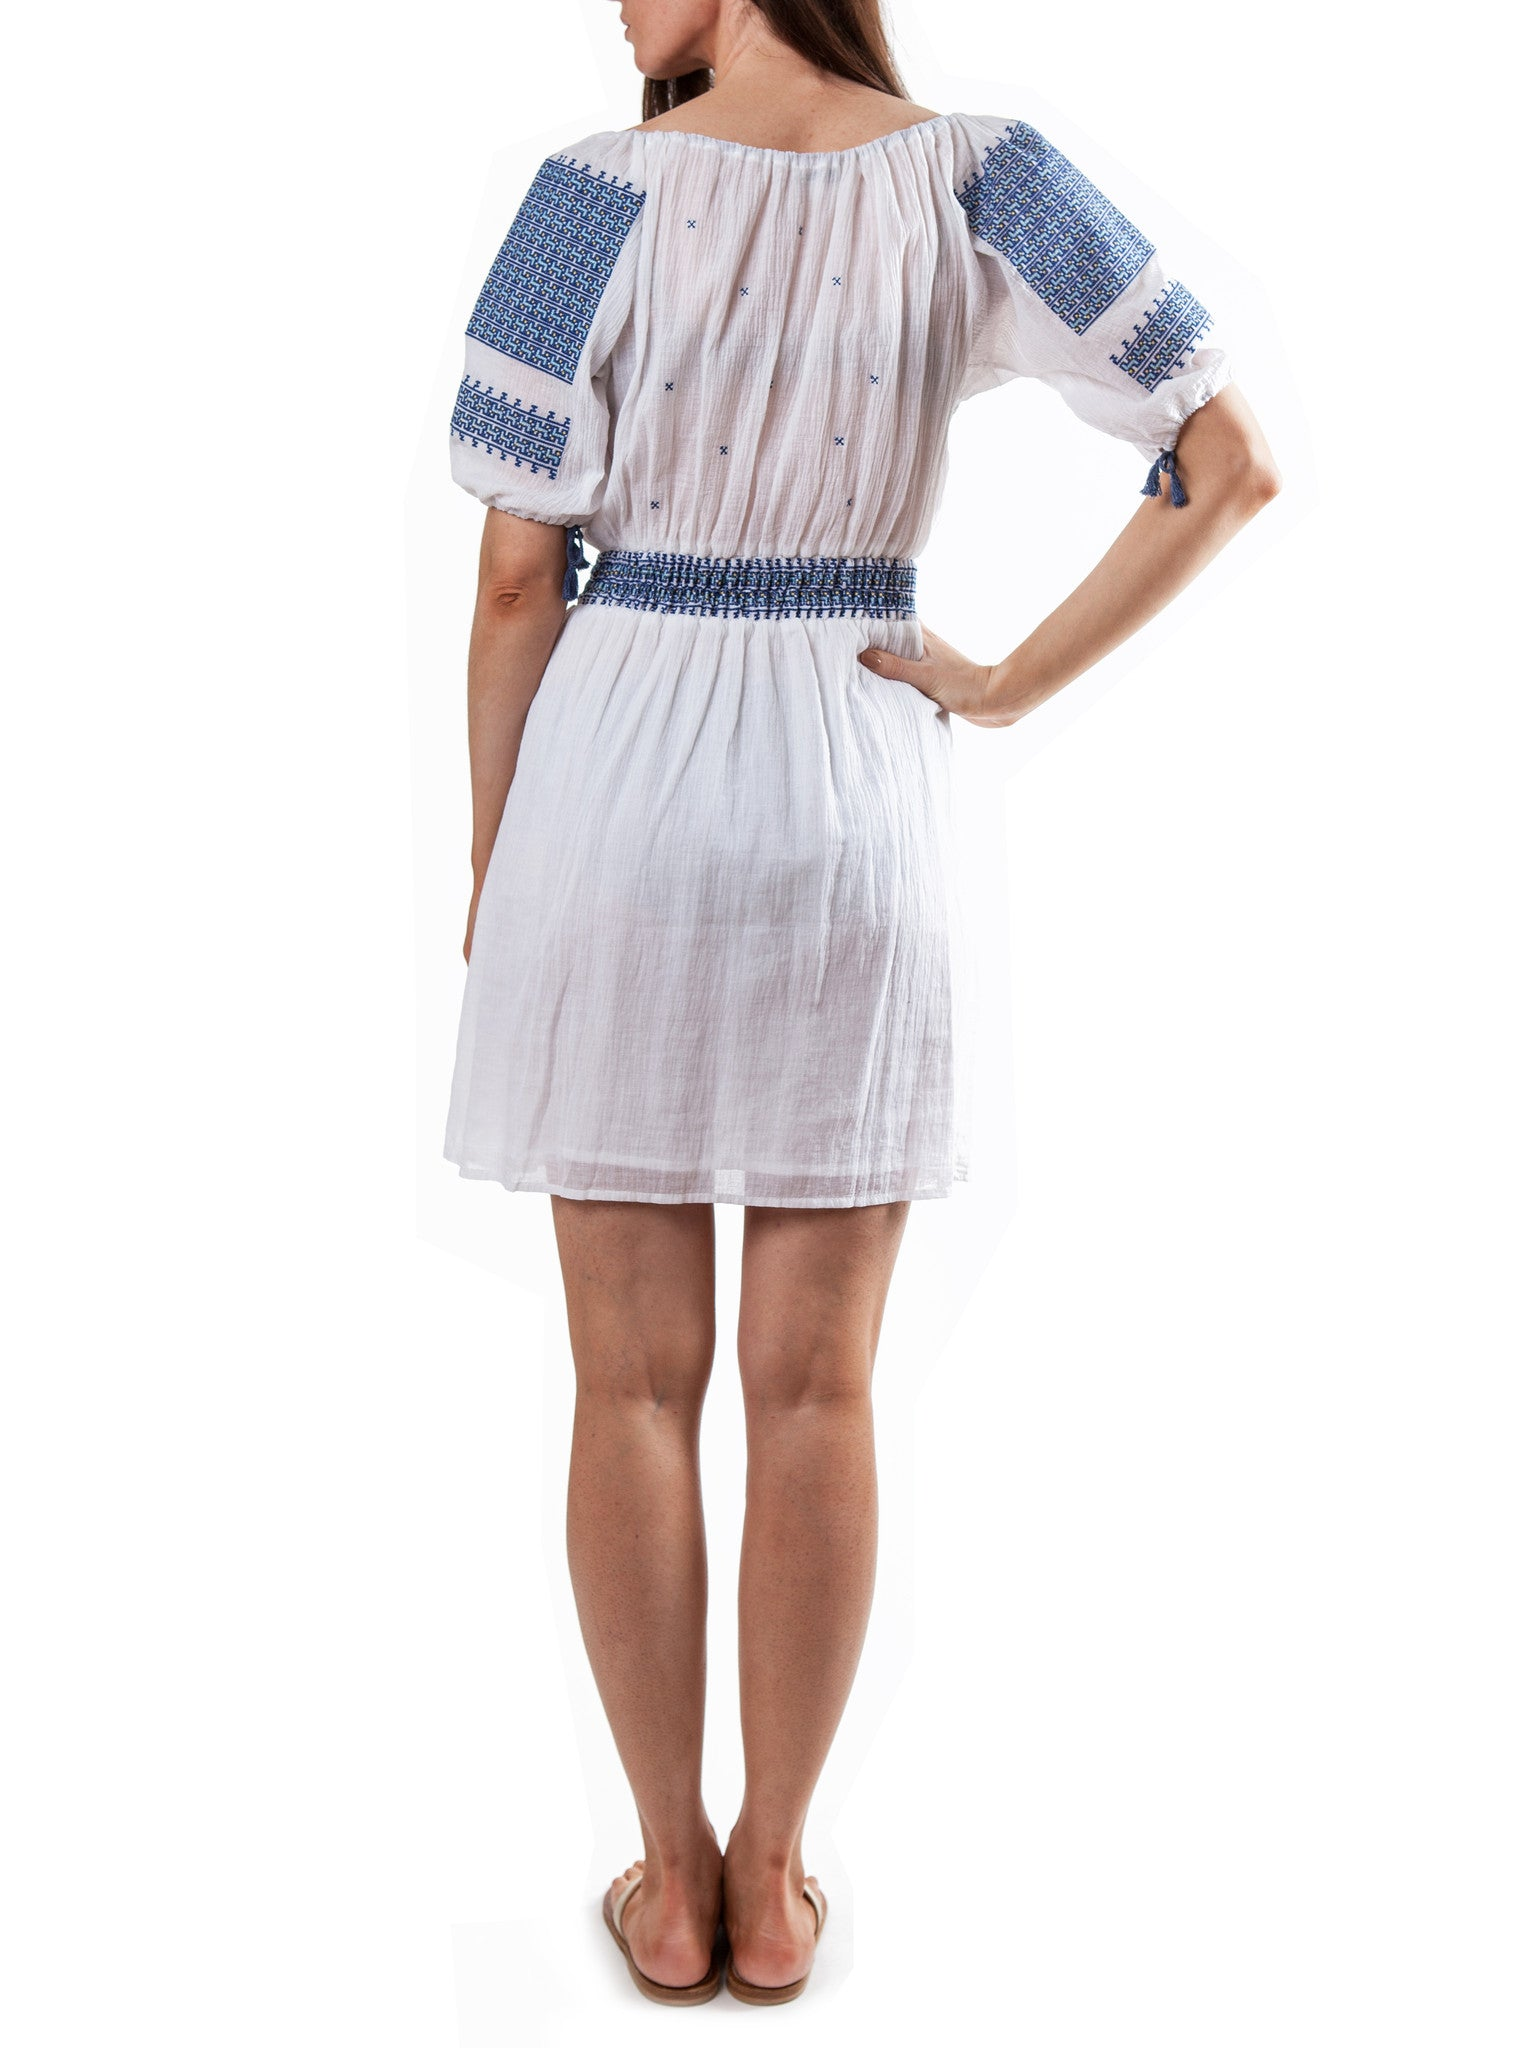 White/Blue embroidery dress | Cotton Voile